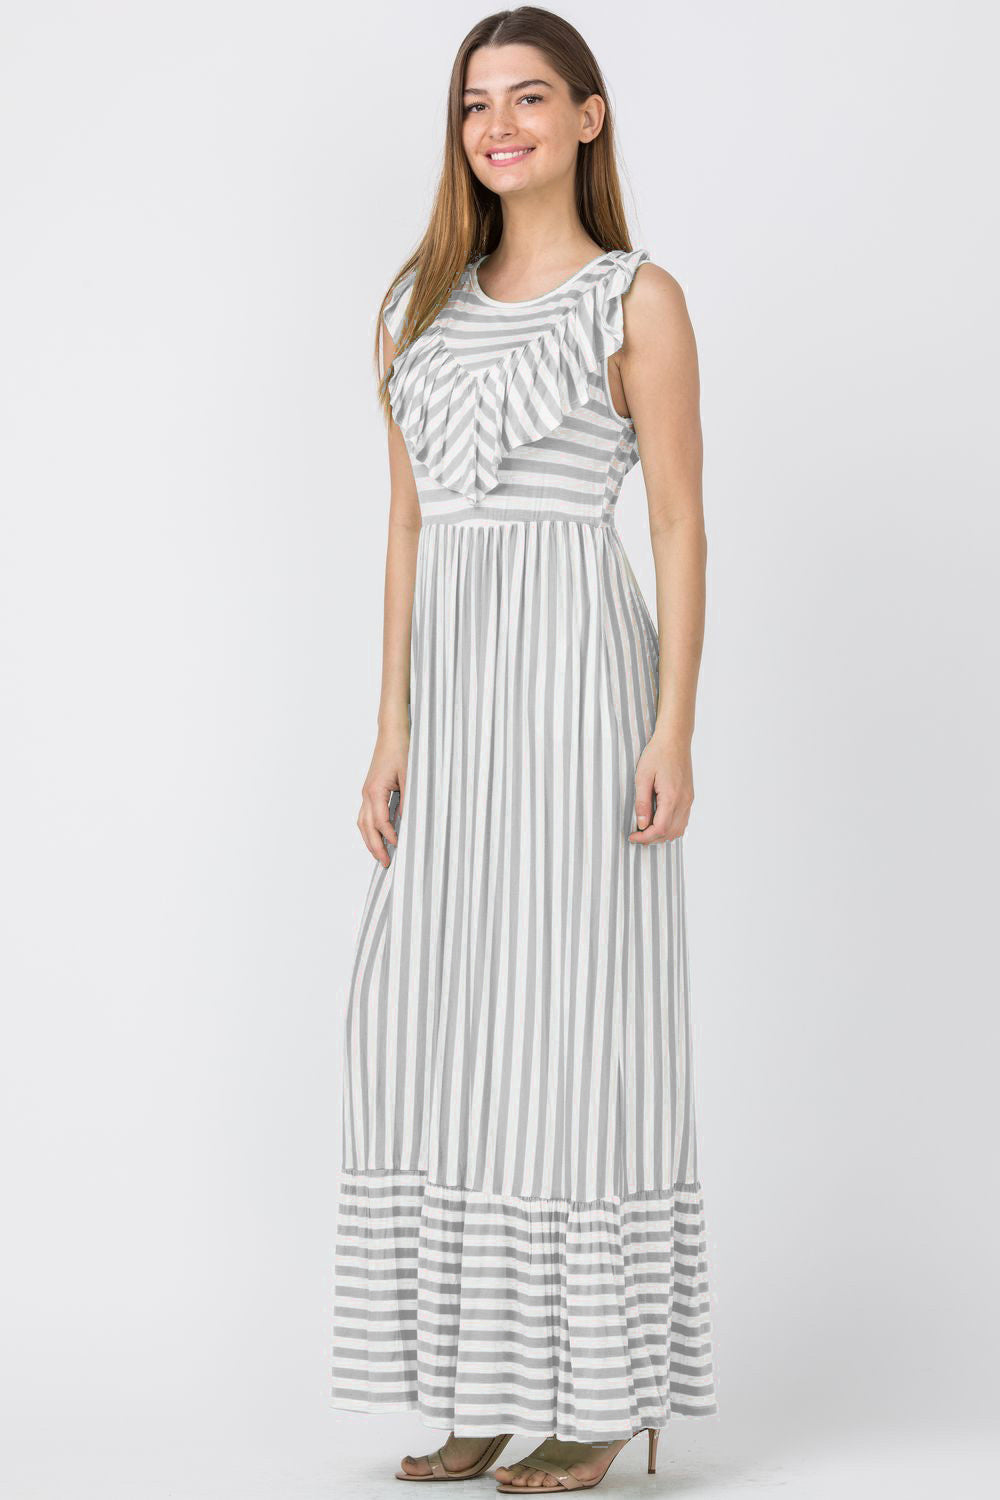 Grey Stripe Front & Back Ruffle Maxi Dress